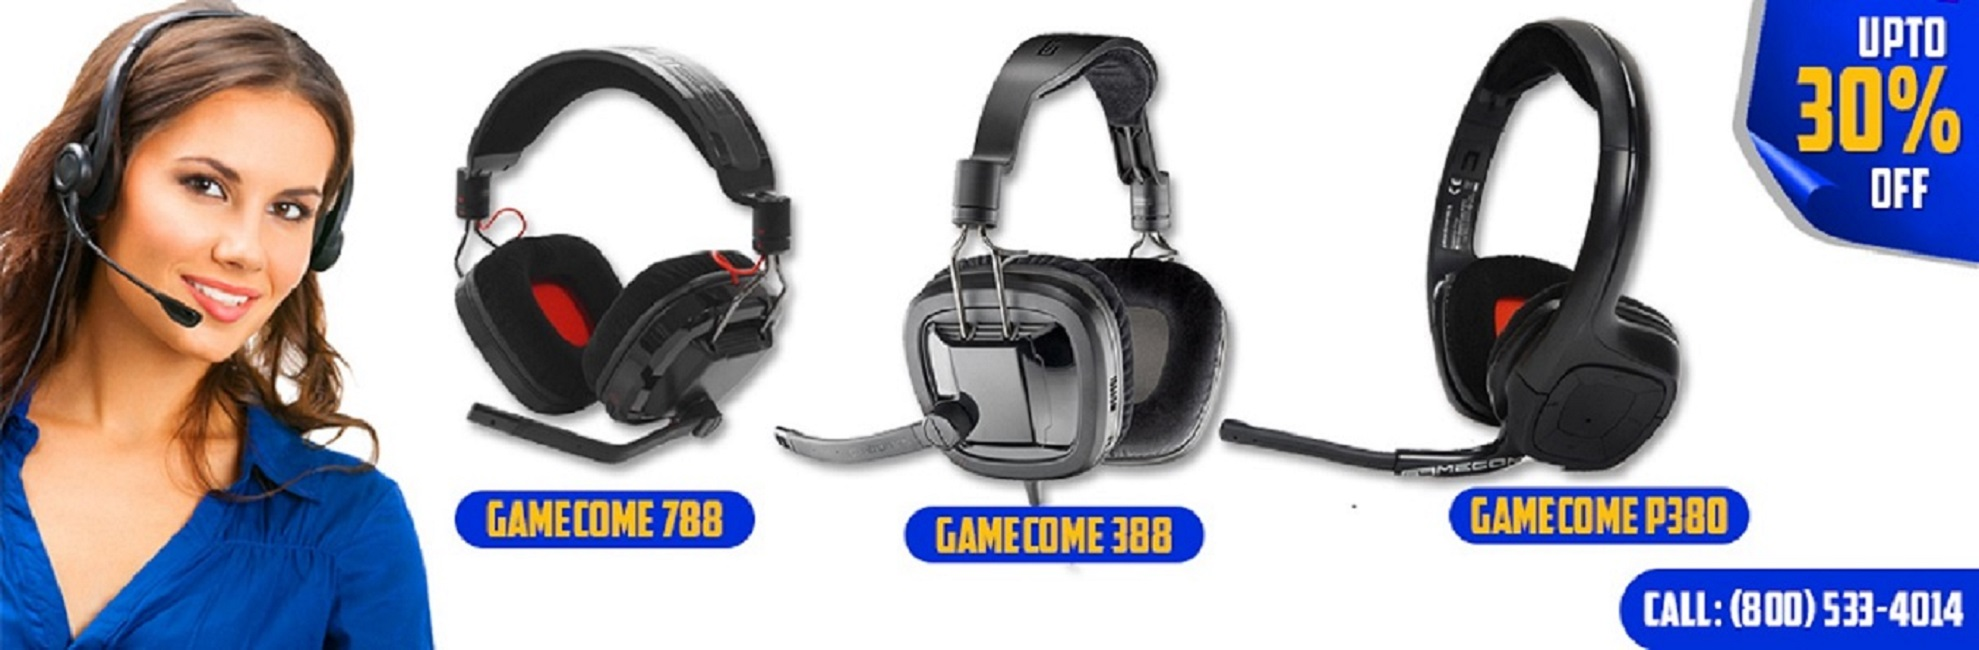 Go Headsets